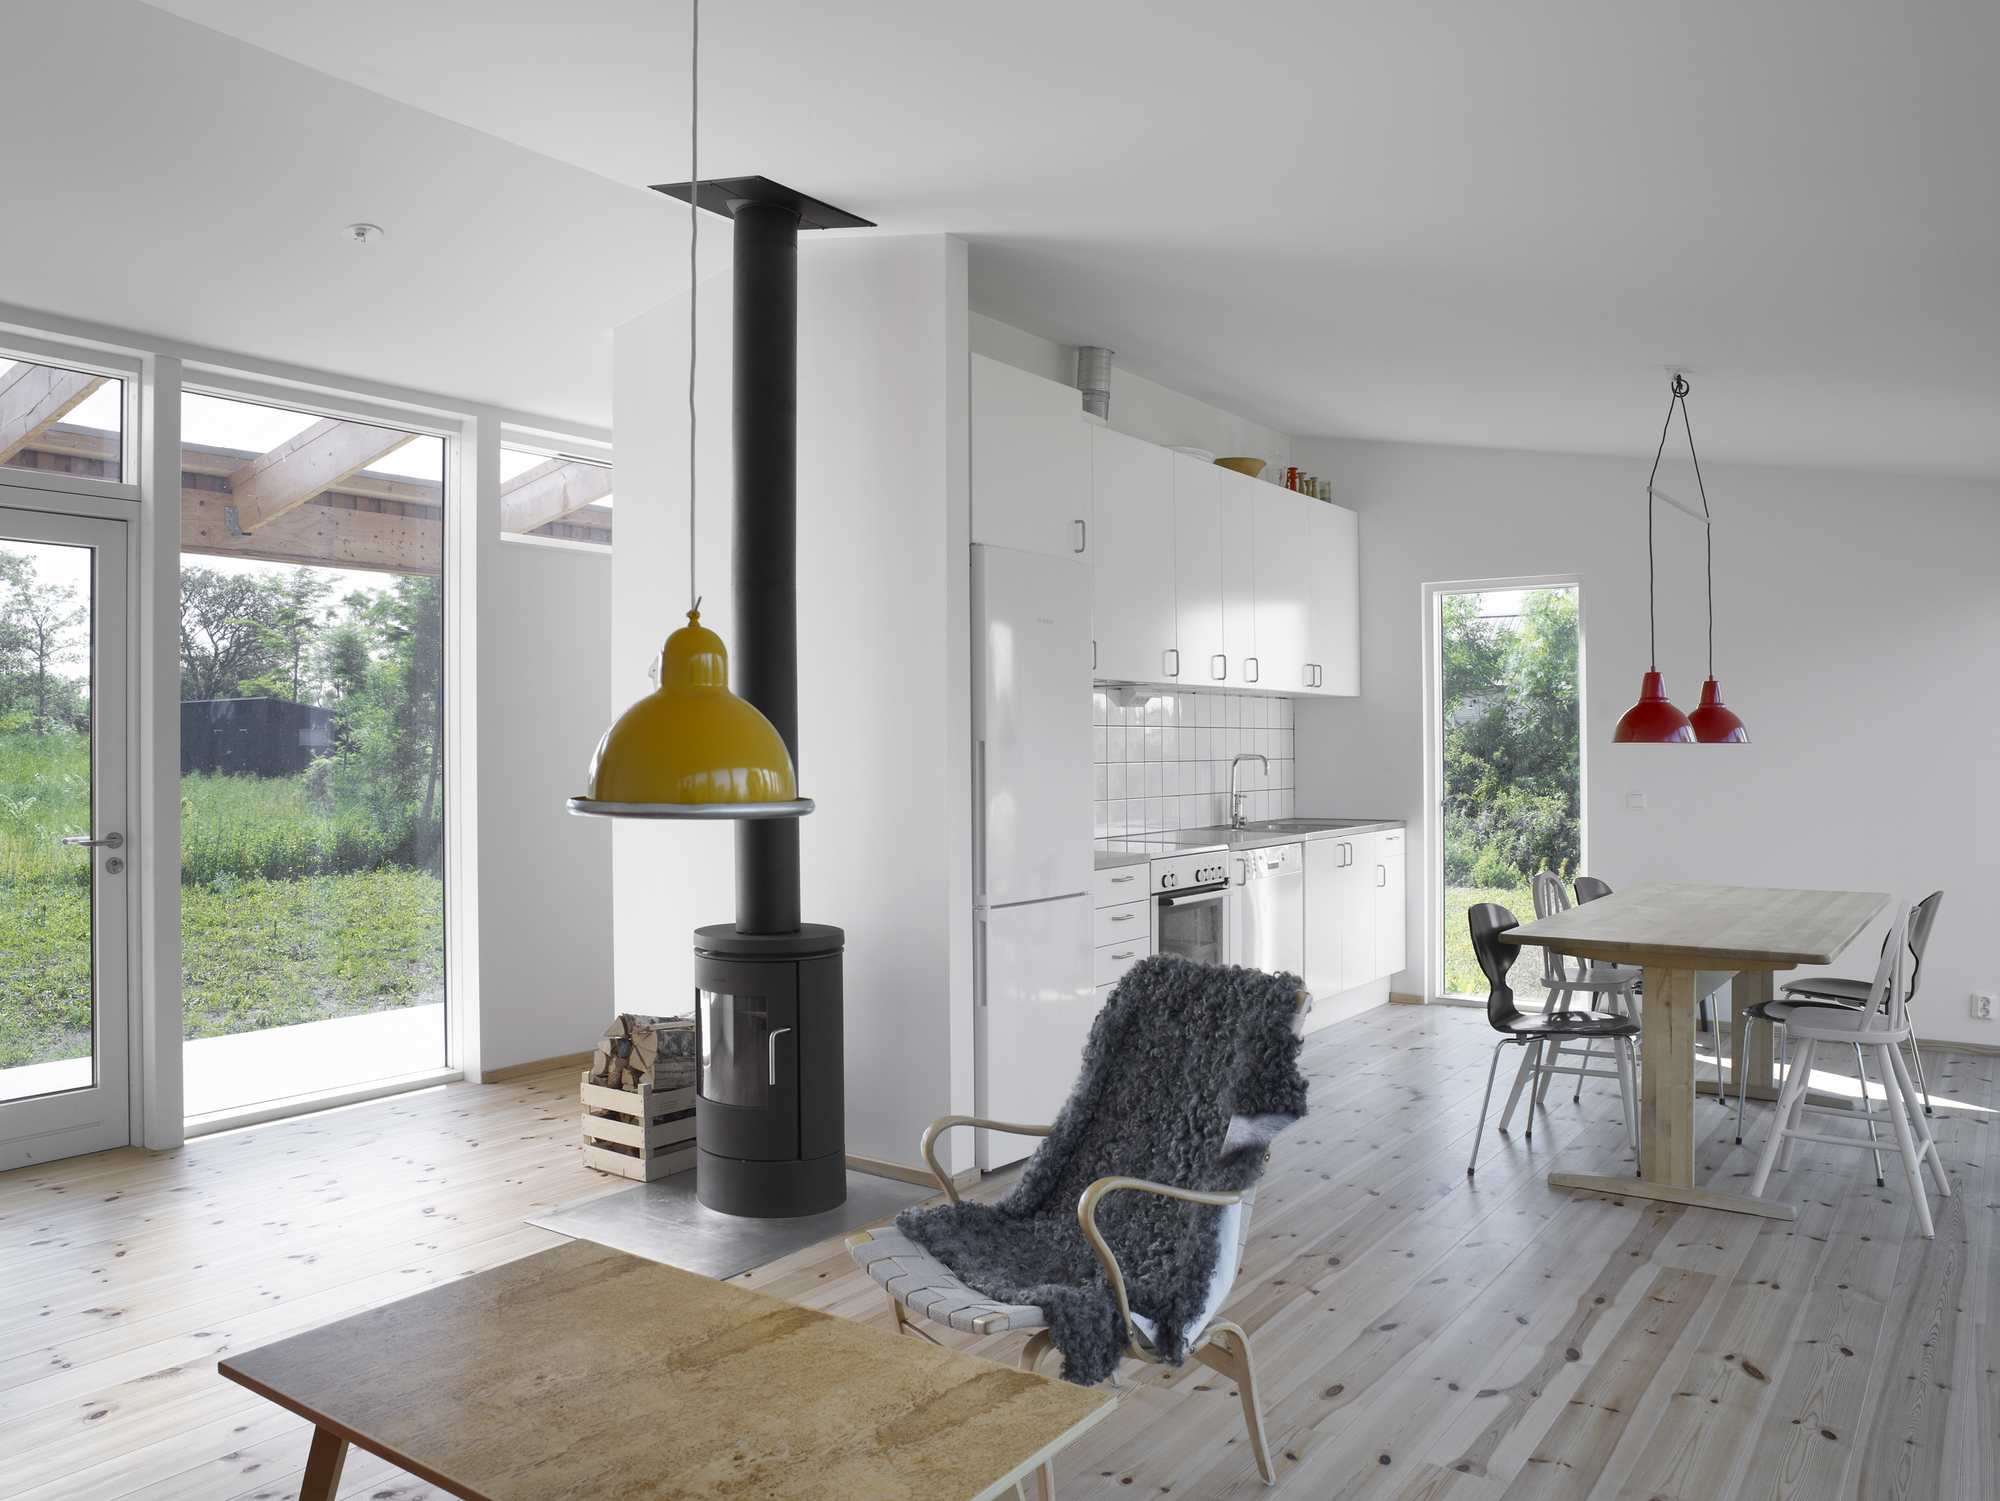 Small House in Sweden by LLP Arkitektkontor